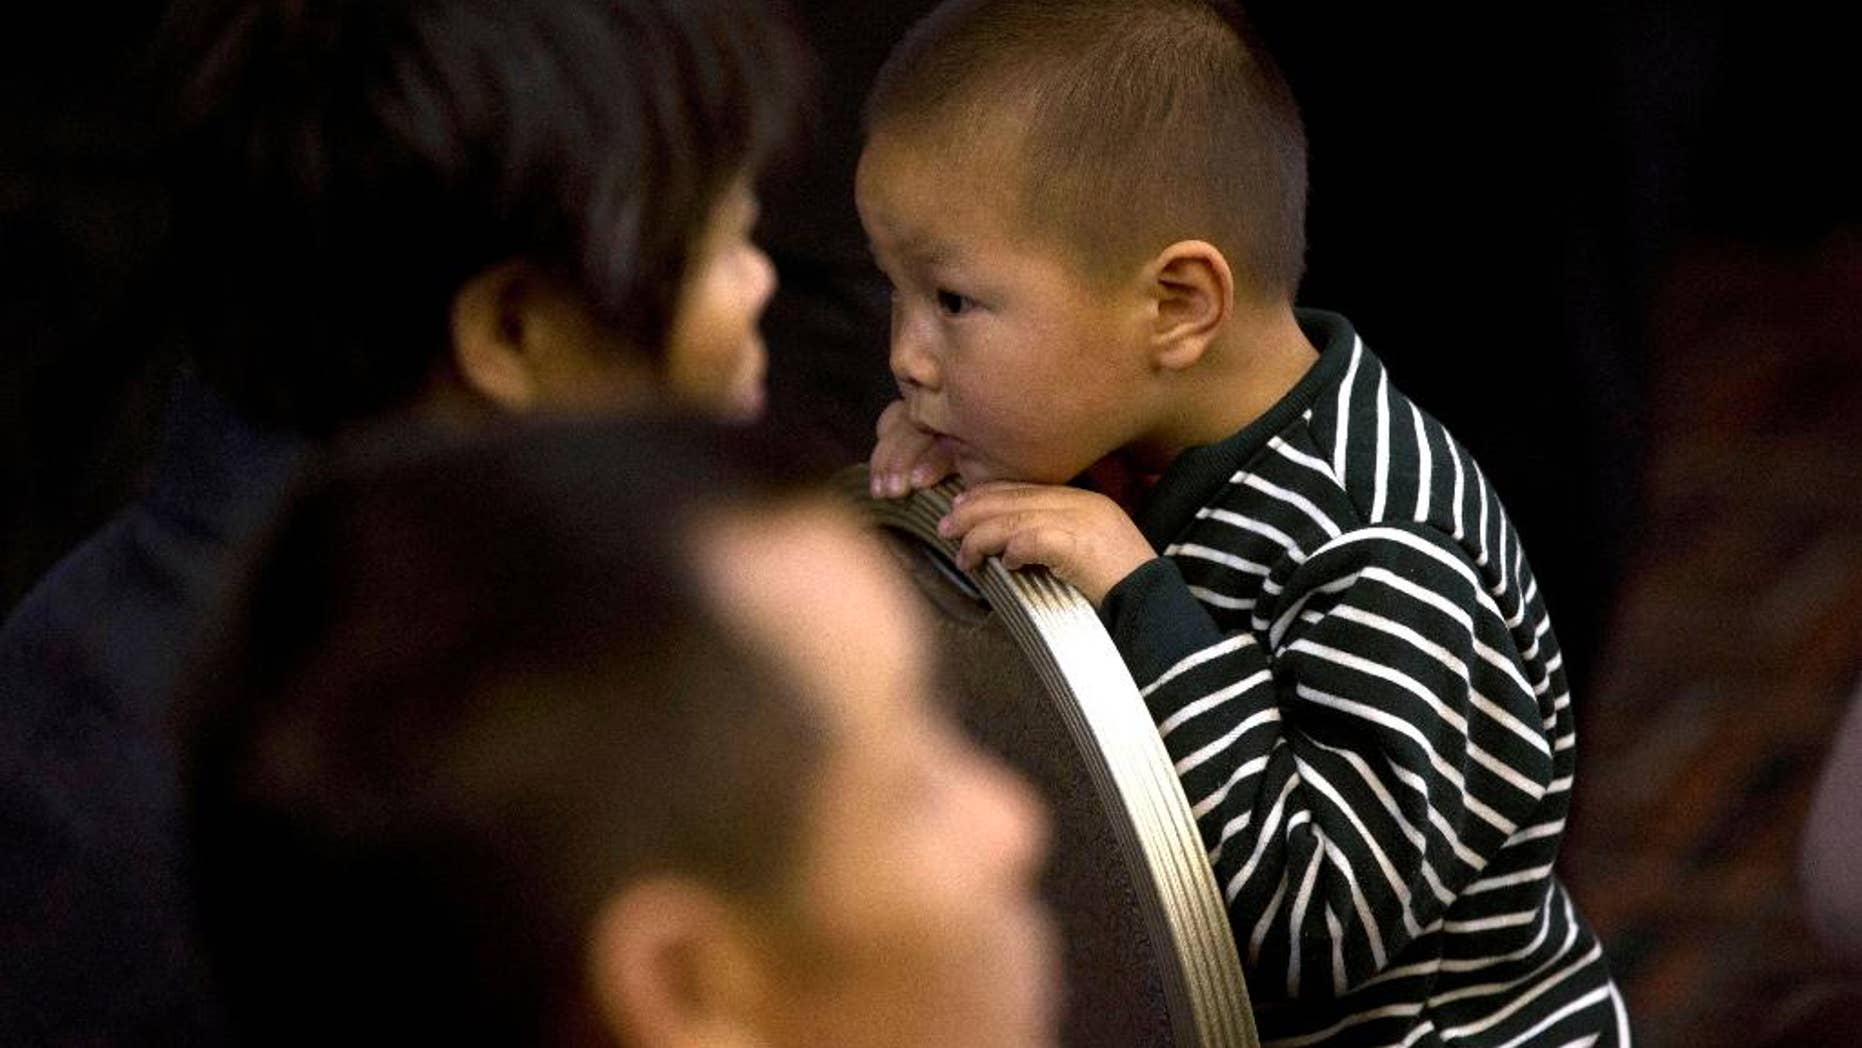 A child waits at a room reserved for relatives of Chinese passengers aboard the missing Malaysia Airlines flight MH370 in Beijing, China, Monday, March 24, 2014. Rain was expected to hamper the hunt Monday for debris suspected of being from the missing Malaysia Airlines jet, as the United States prepared to move a specialized device that can locate black boxes into the south Indian Ocean region.  (AP Photo/Ng Han Guan)